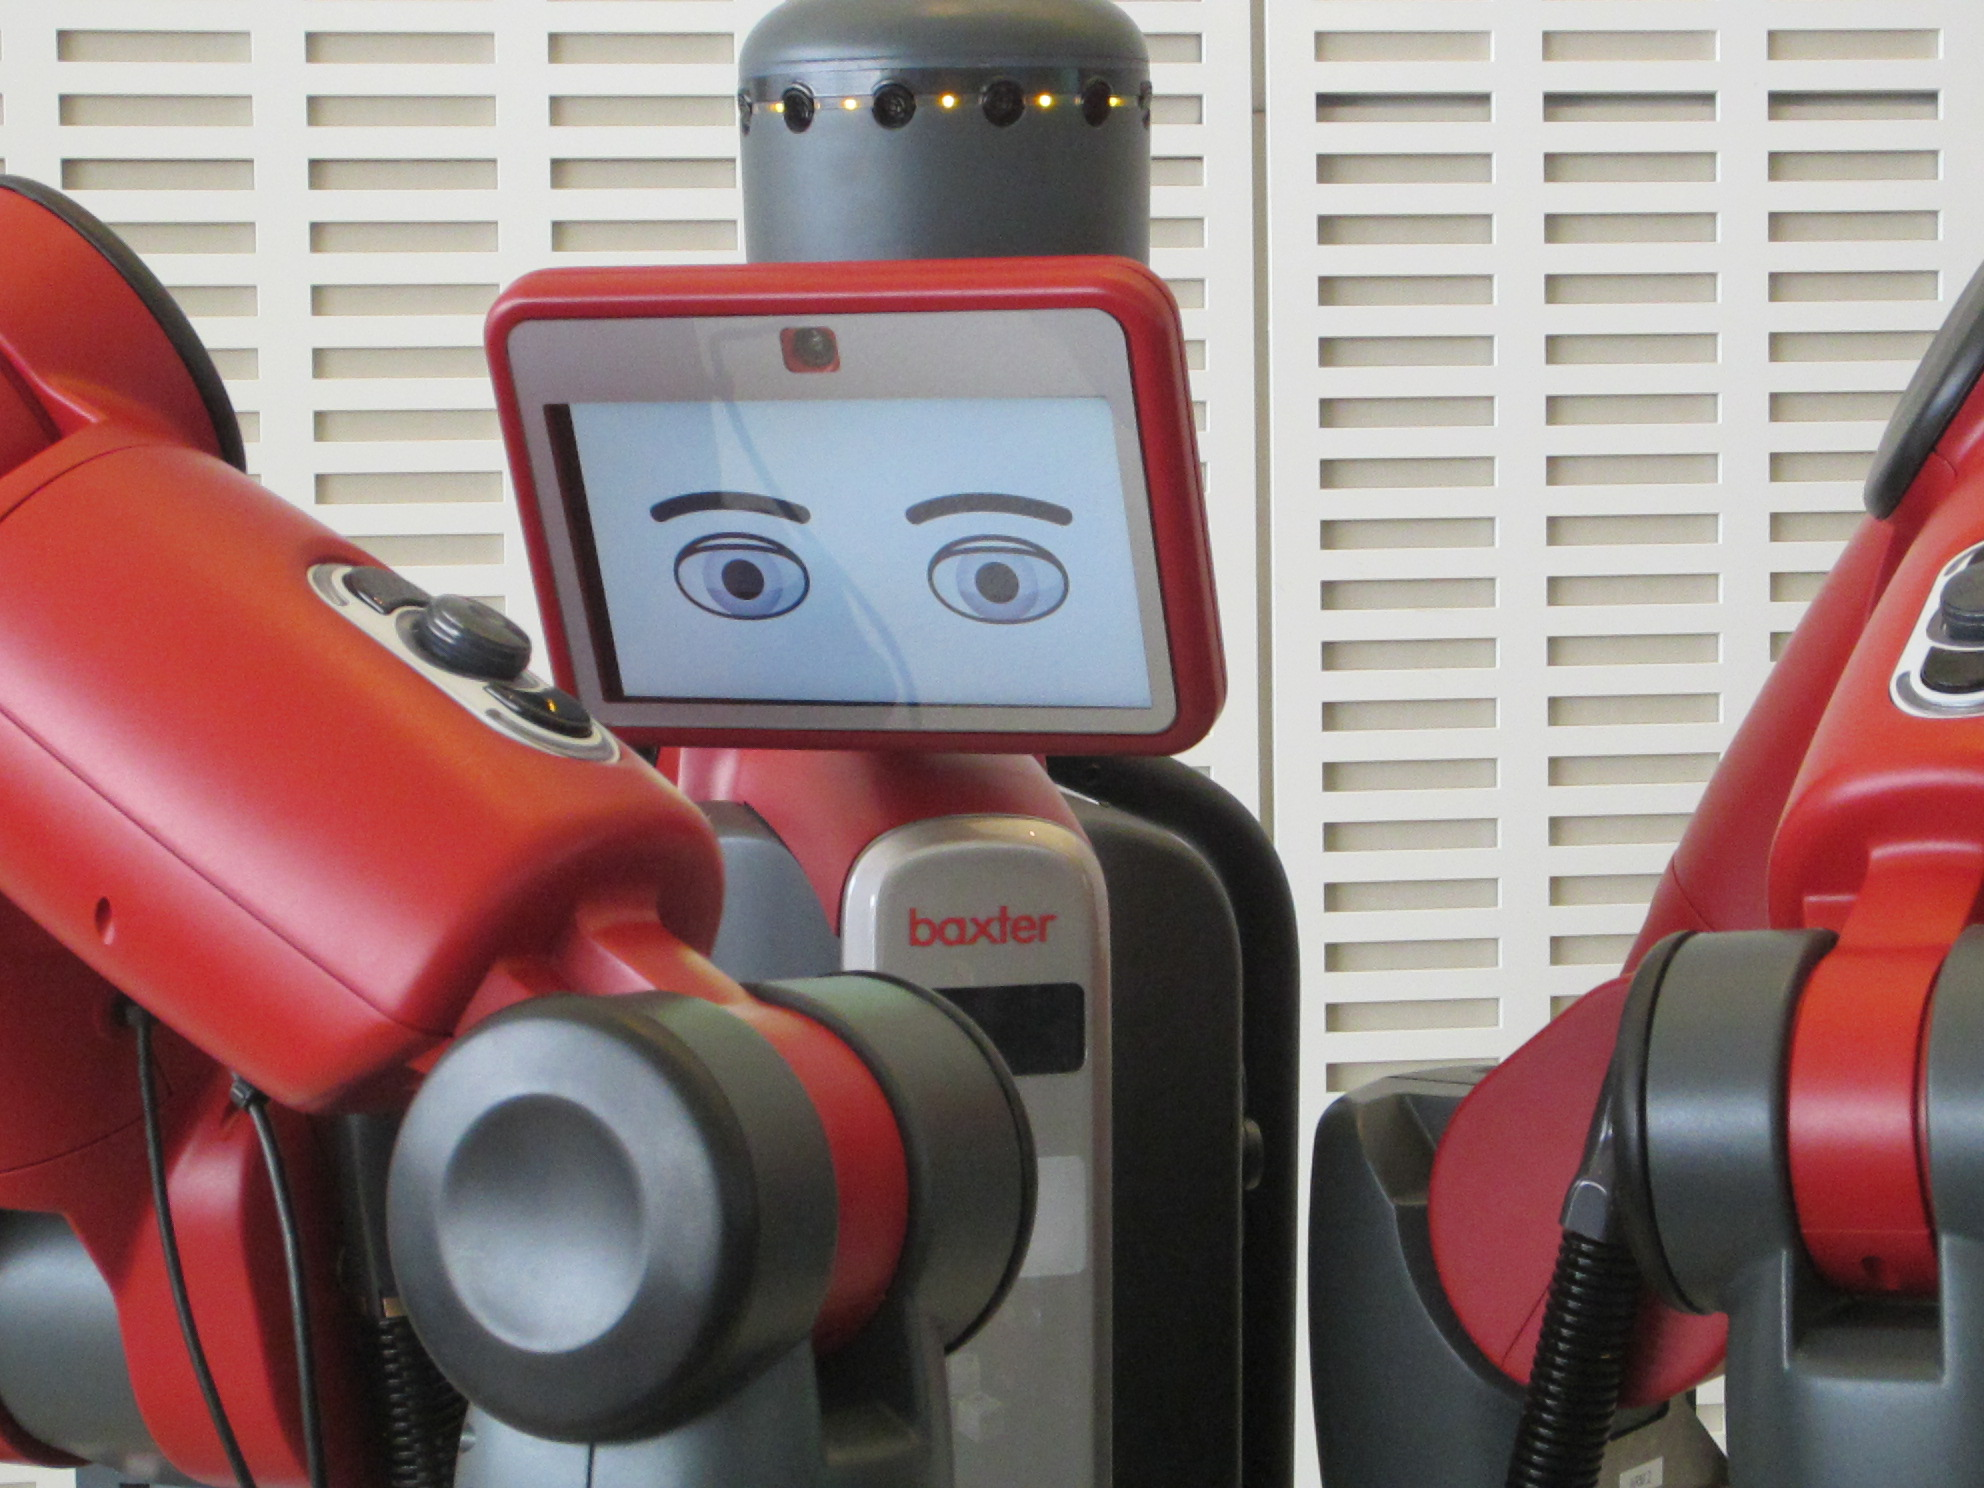 Rethink Robotics' Baxter